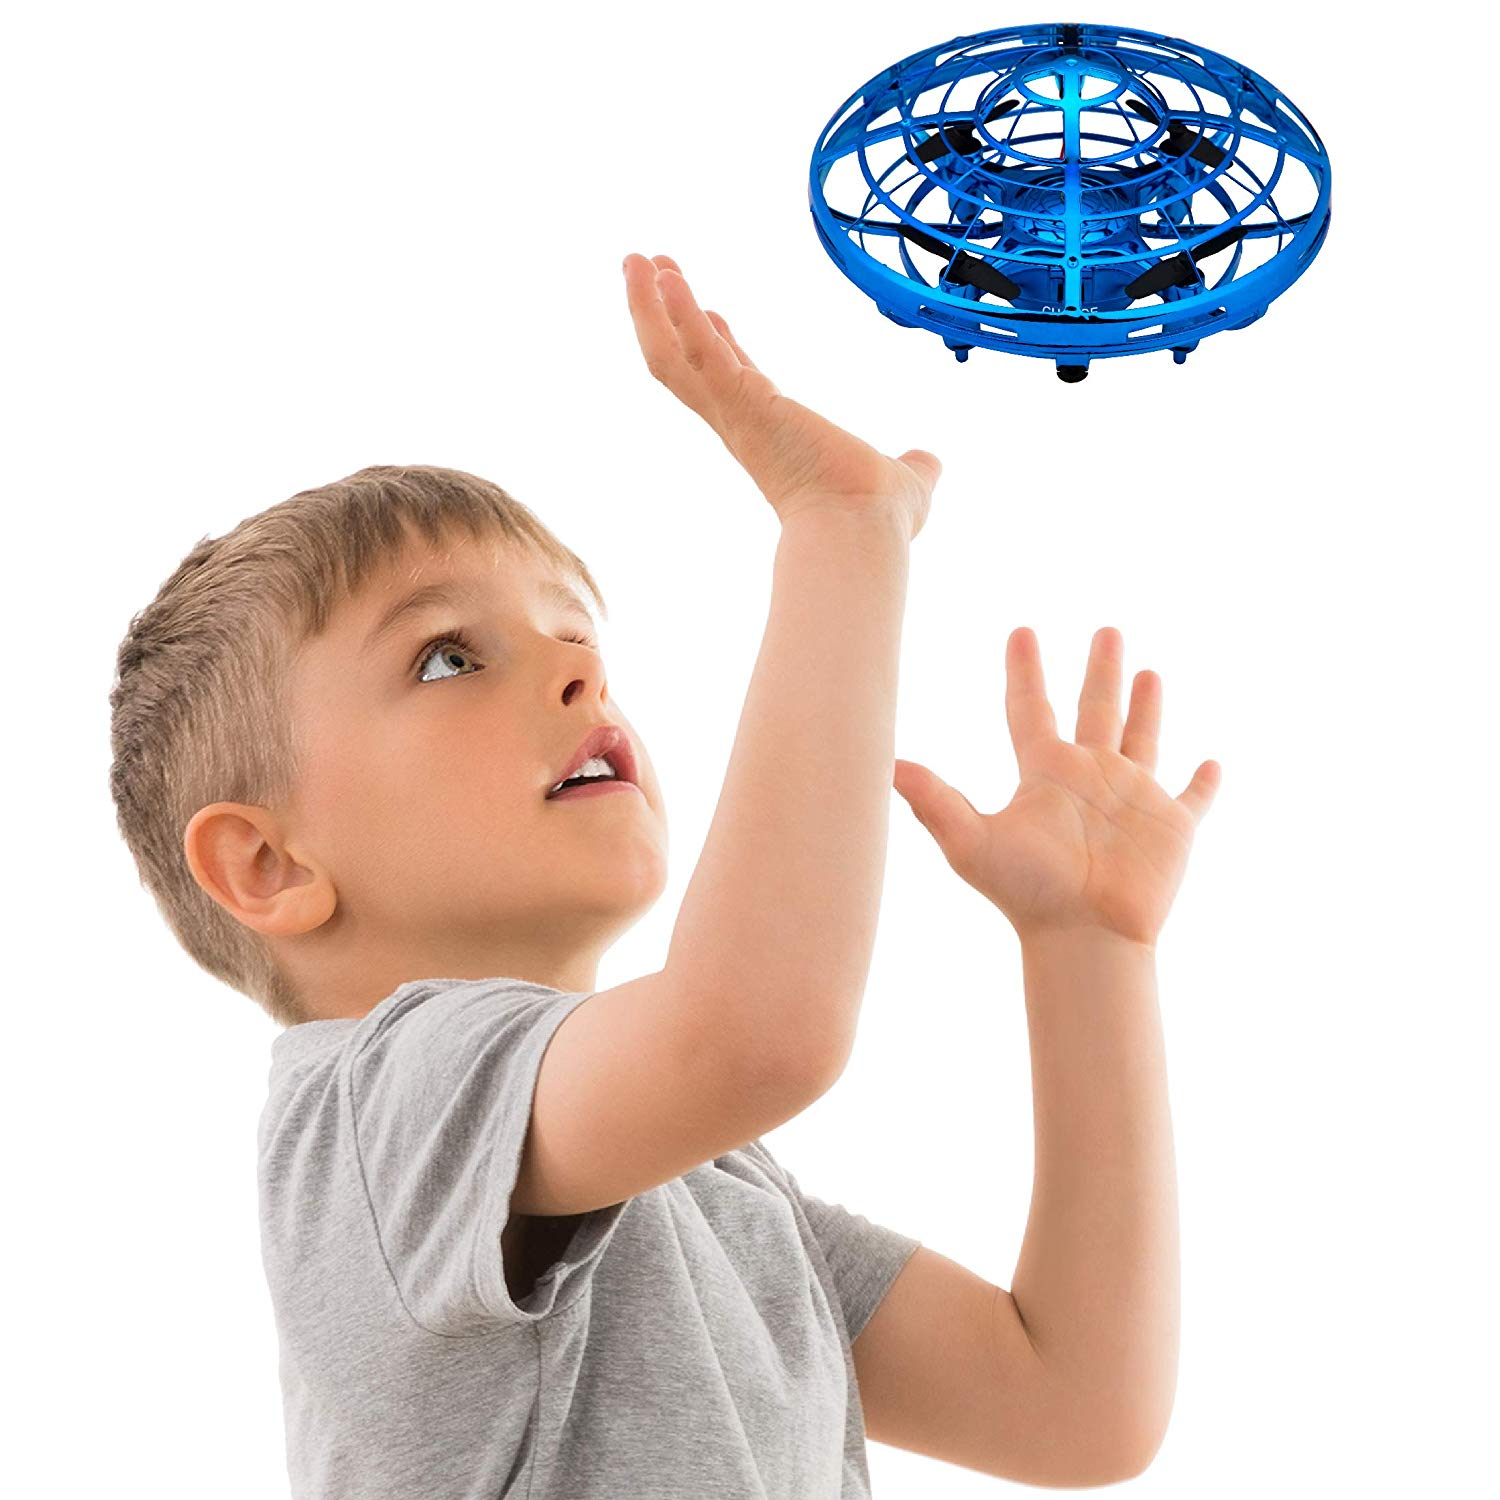 Review of Hand Operated Drones for Kids or Adults - Scoot Hands Free Mini Drone Helicopter